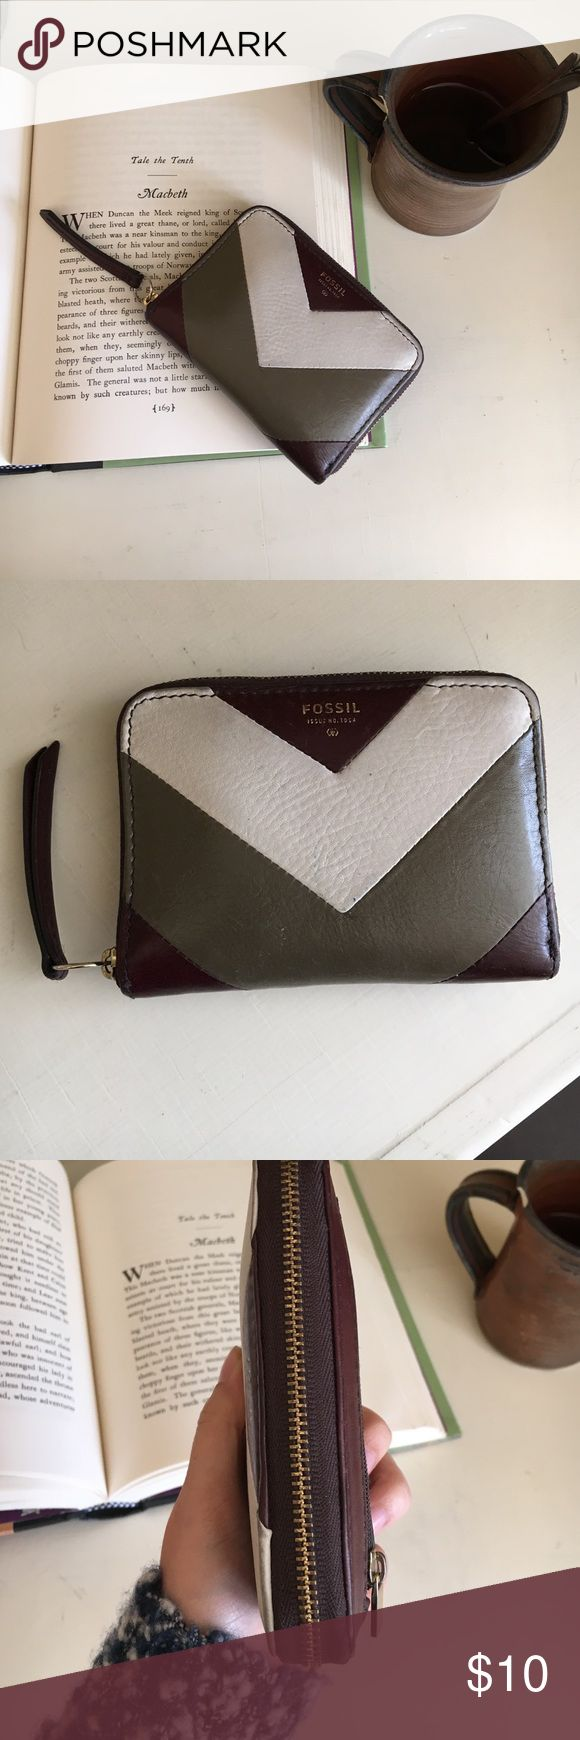 Fossil wallet Excellent condition Fossil Bags Wallets